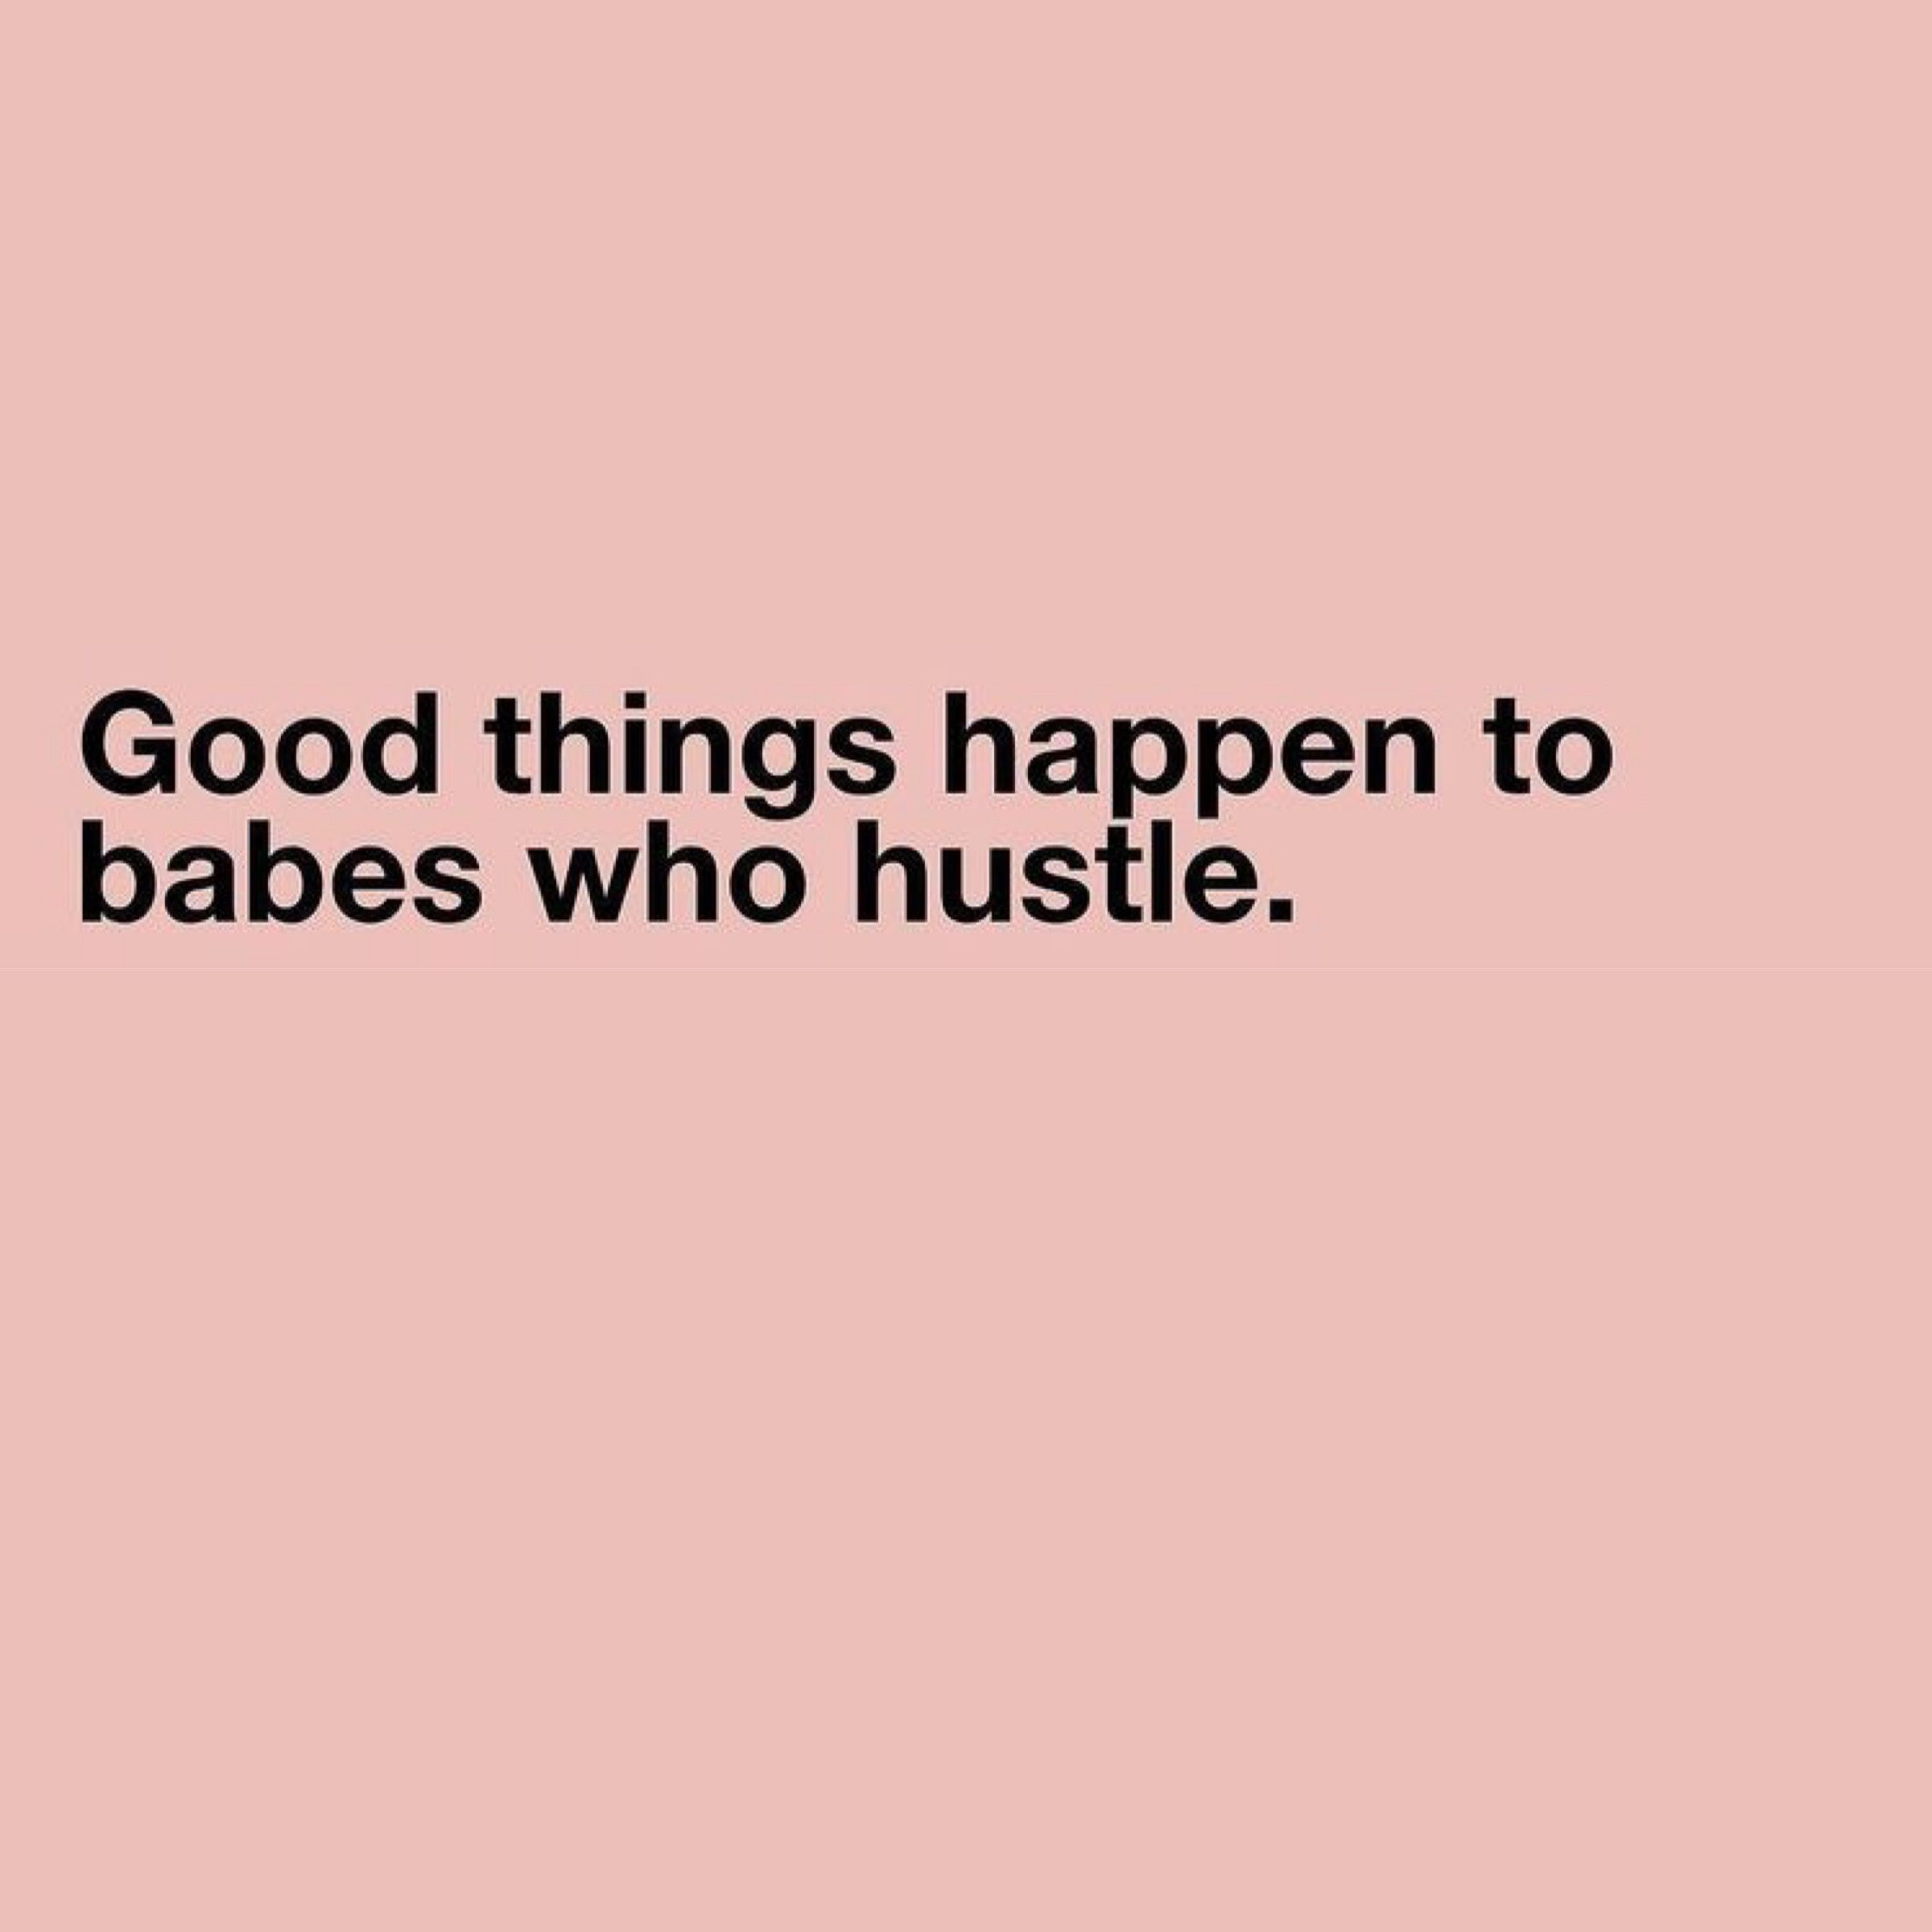 Hustle Quotes Awesome Keep Hustling   Food For Thought   Pinterest  Hustle Wisdom